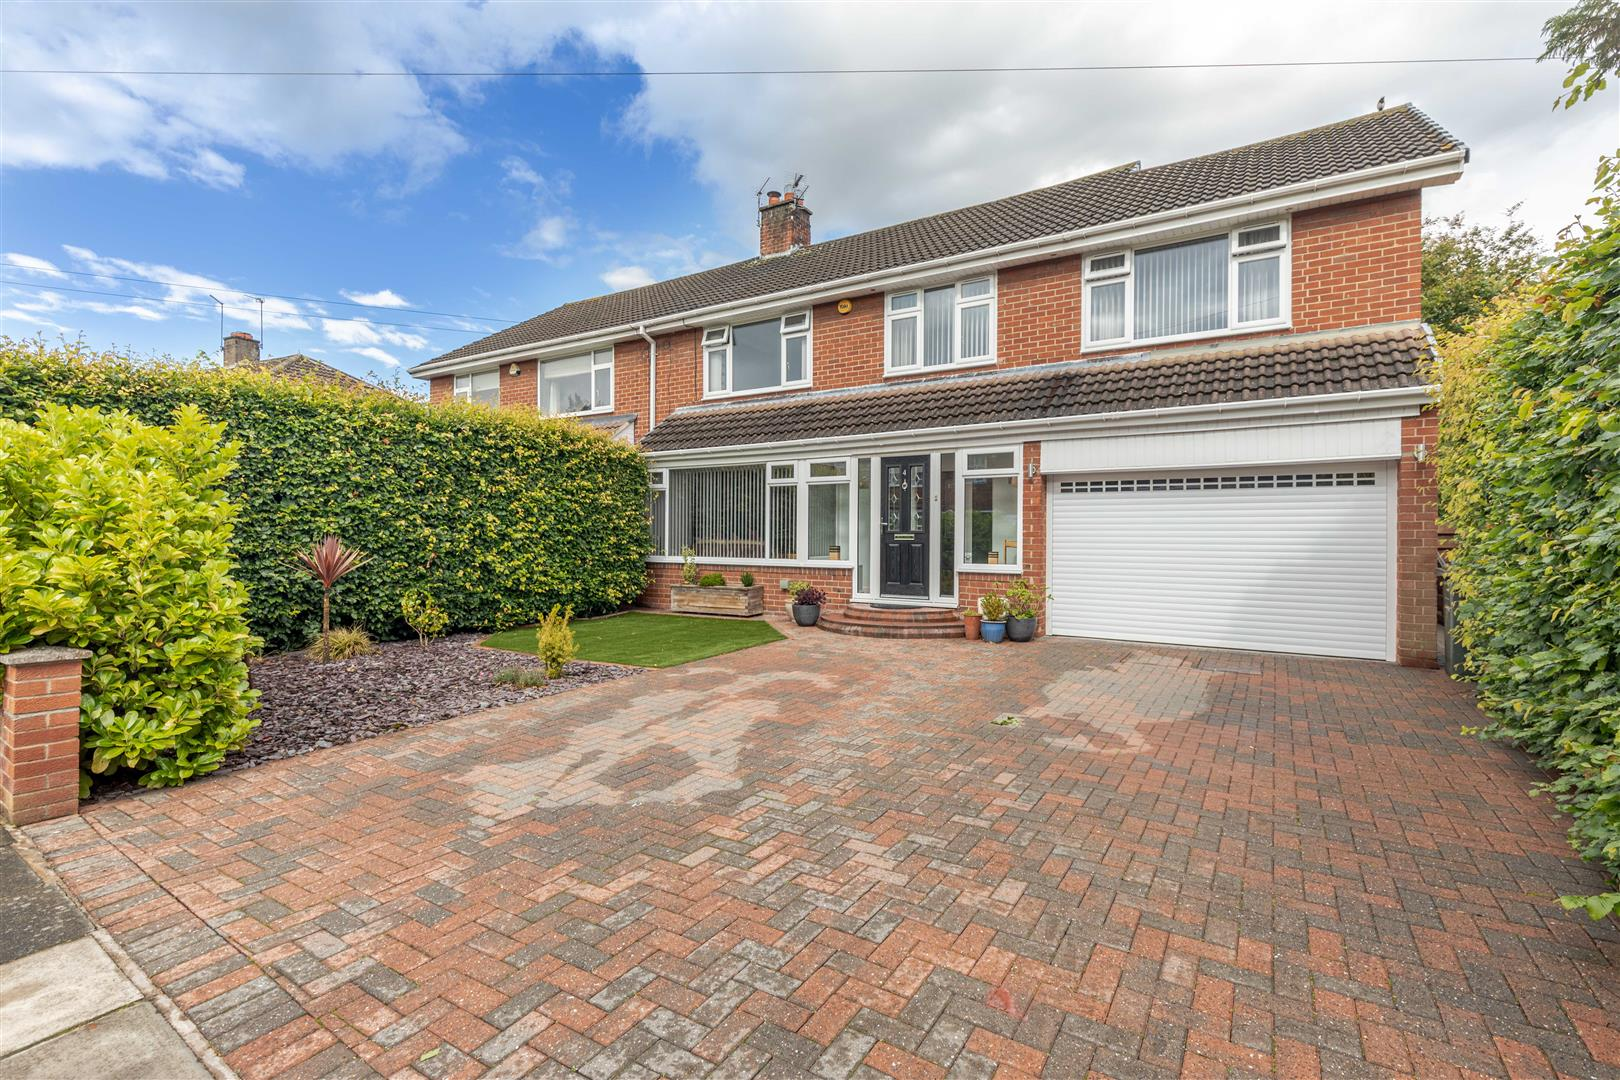 4 bed semi-detached house for sale in Newcastle Upon Tyne, NE3 5TB  - Property Image 1